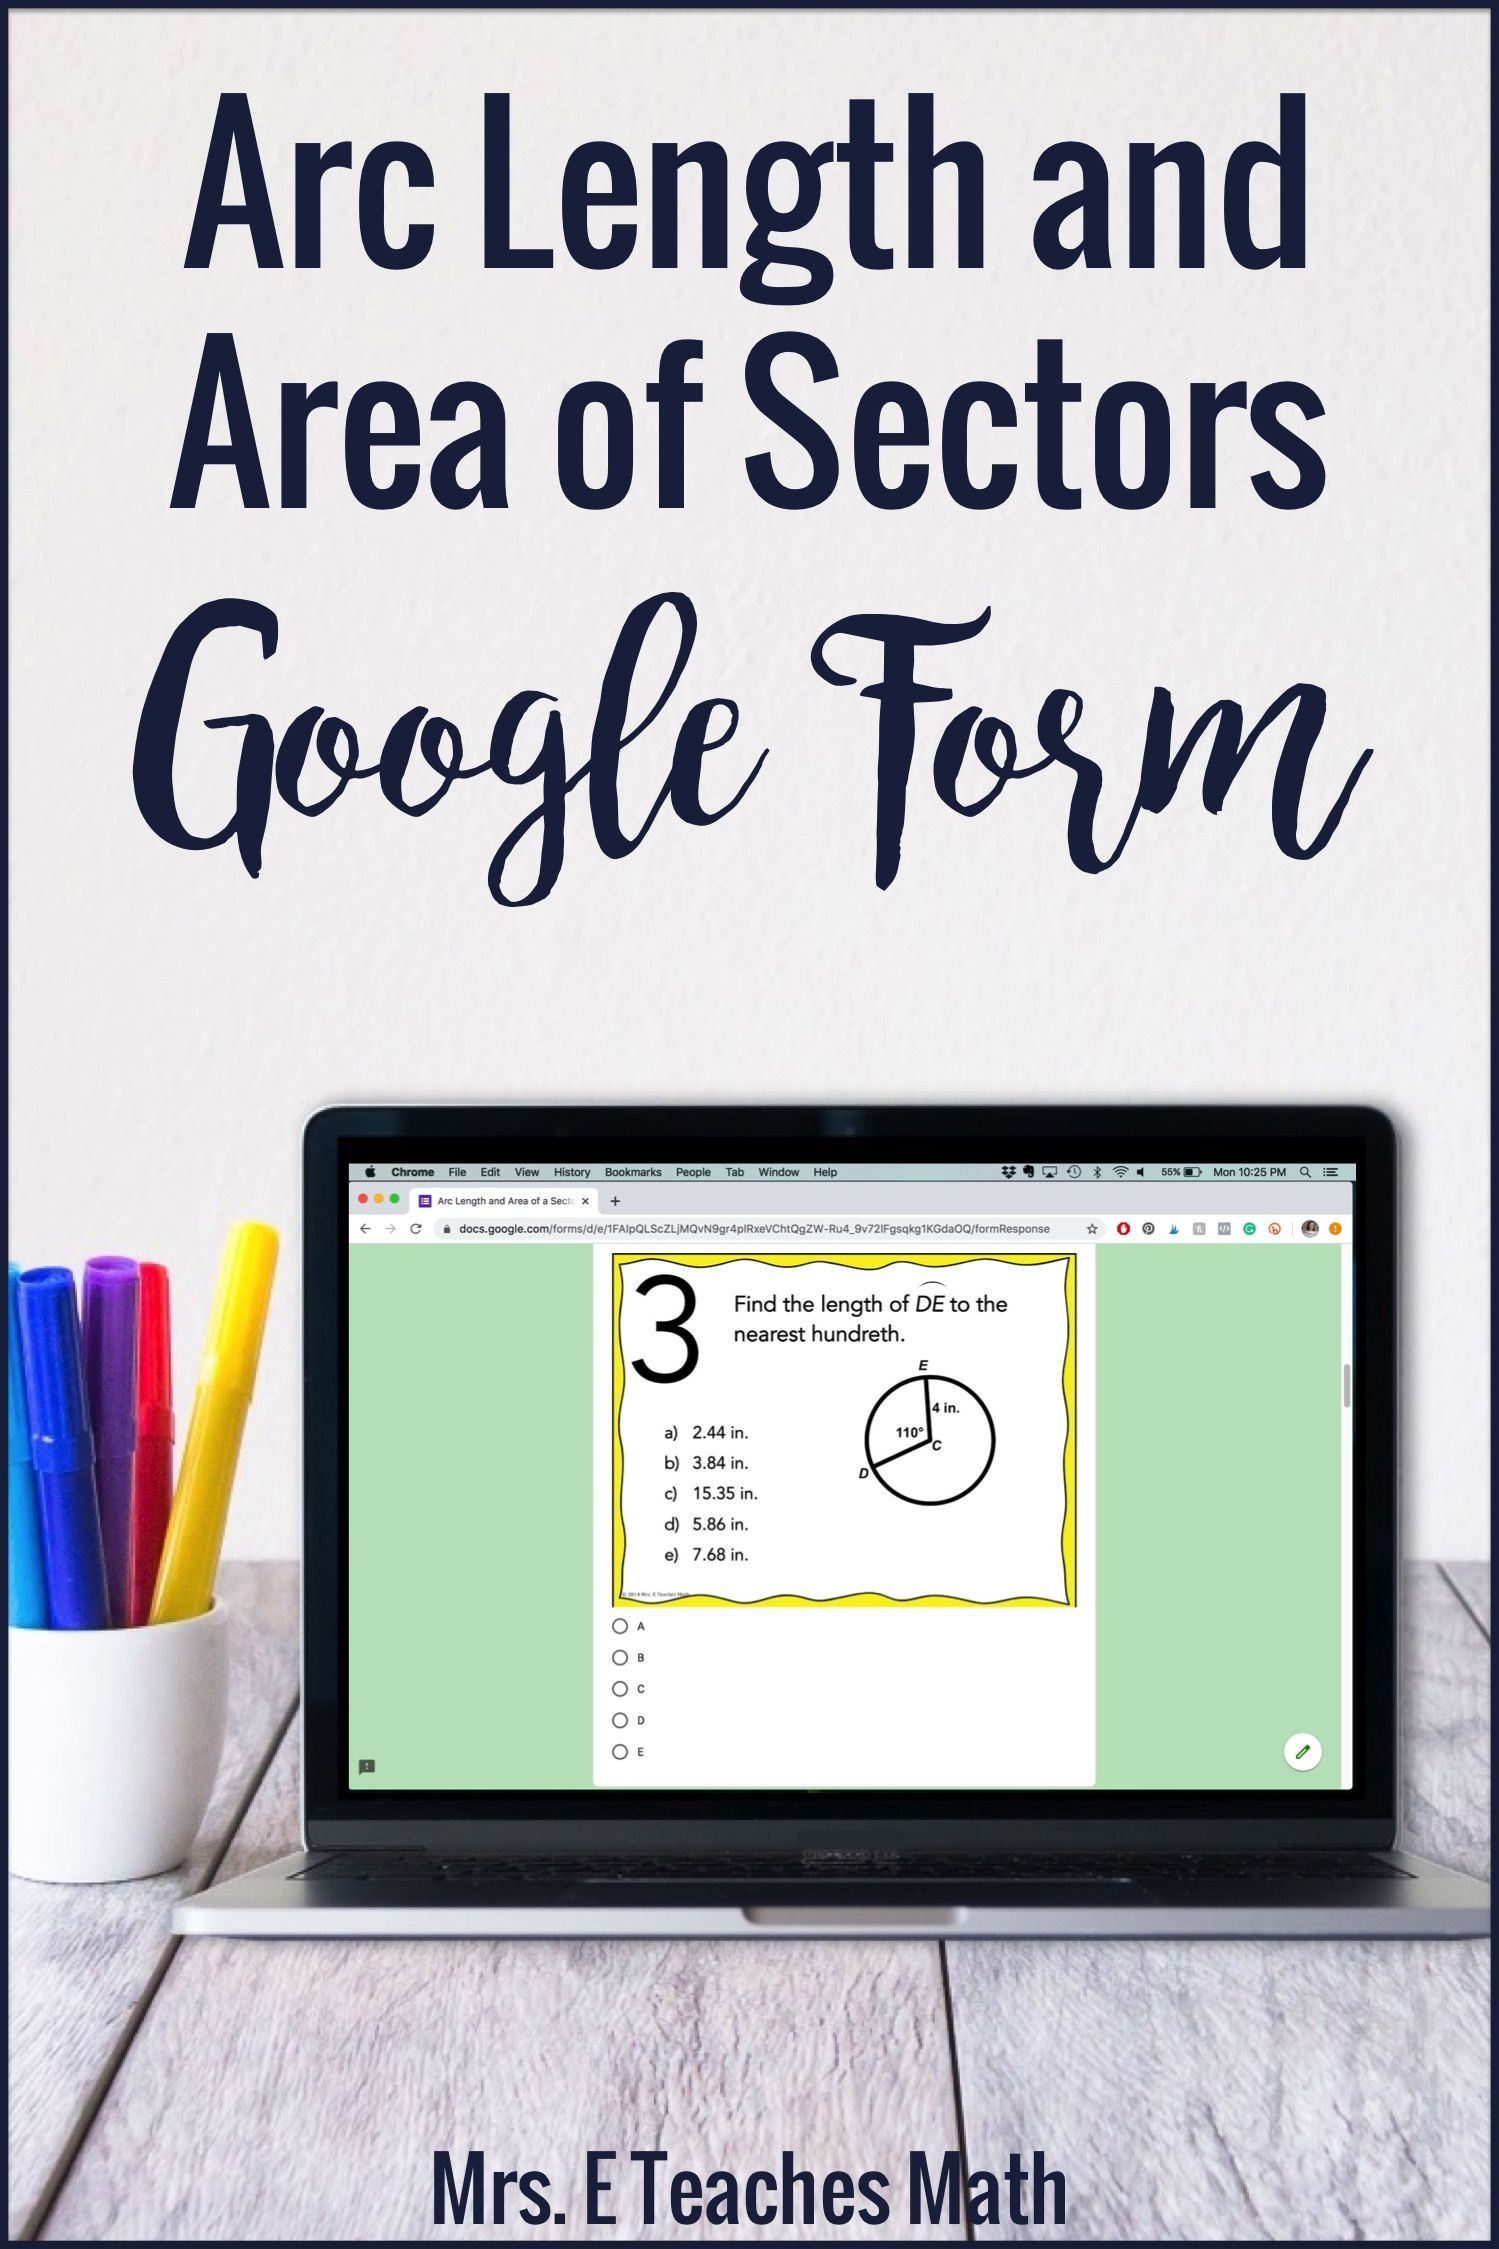 Arc Length And Area Of Sectors Google Forms Distance Learning In 2020 Distance Learning Google Forms High School Math Lesson Plans